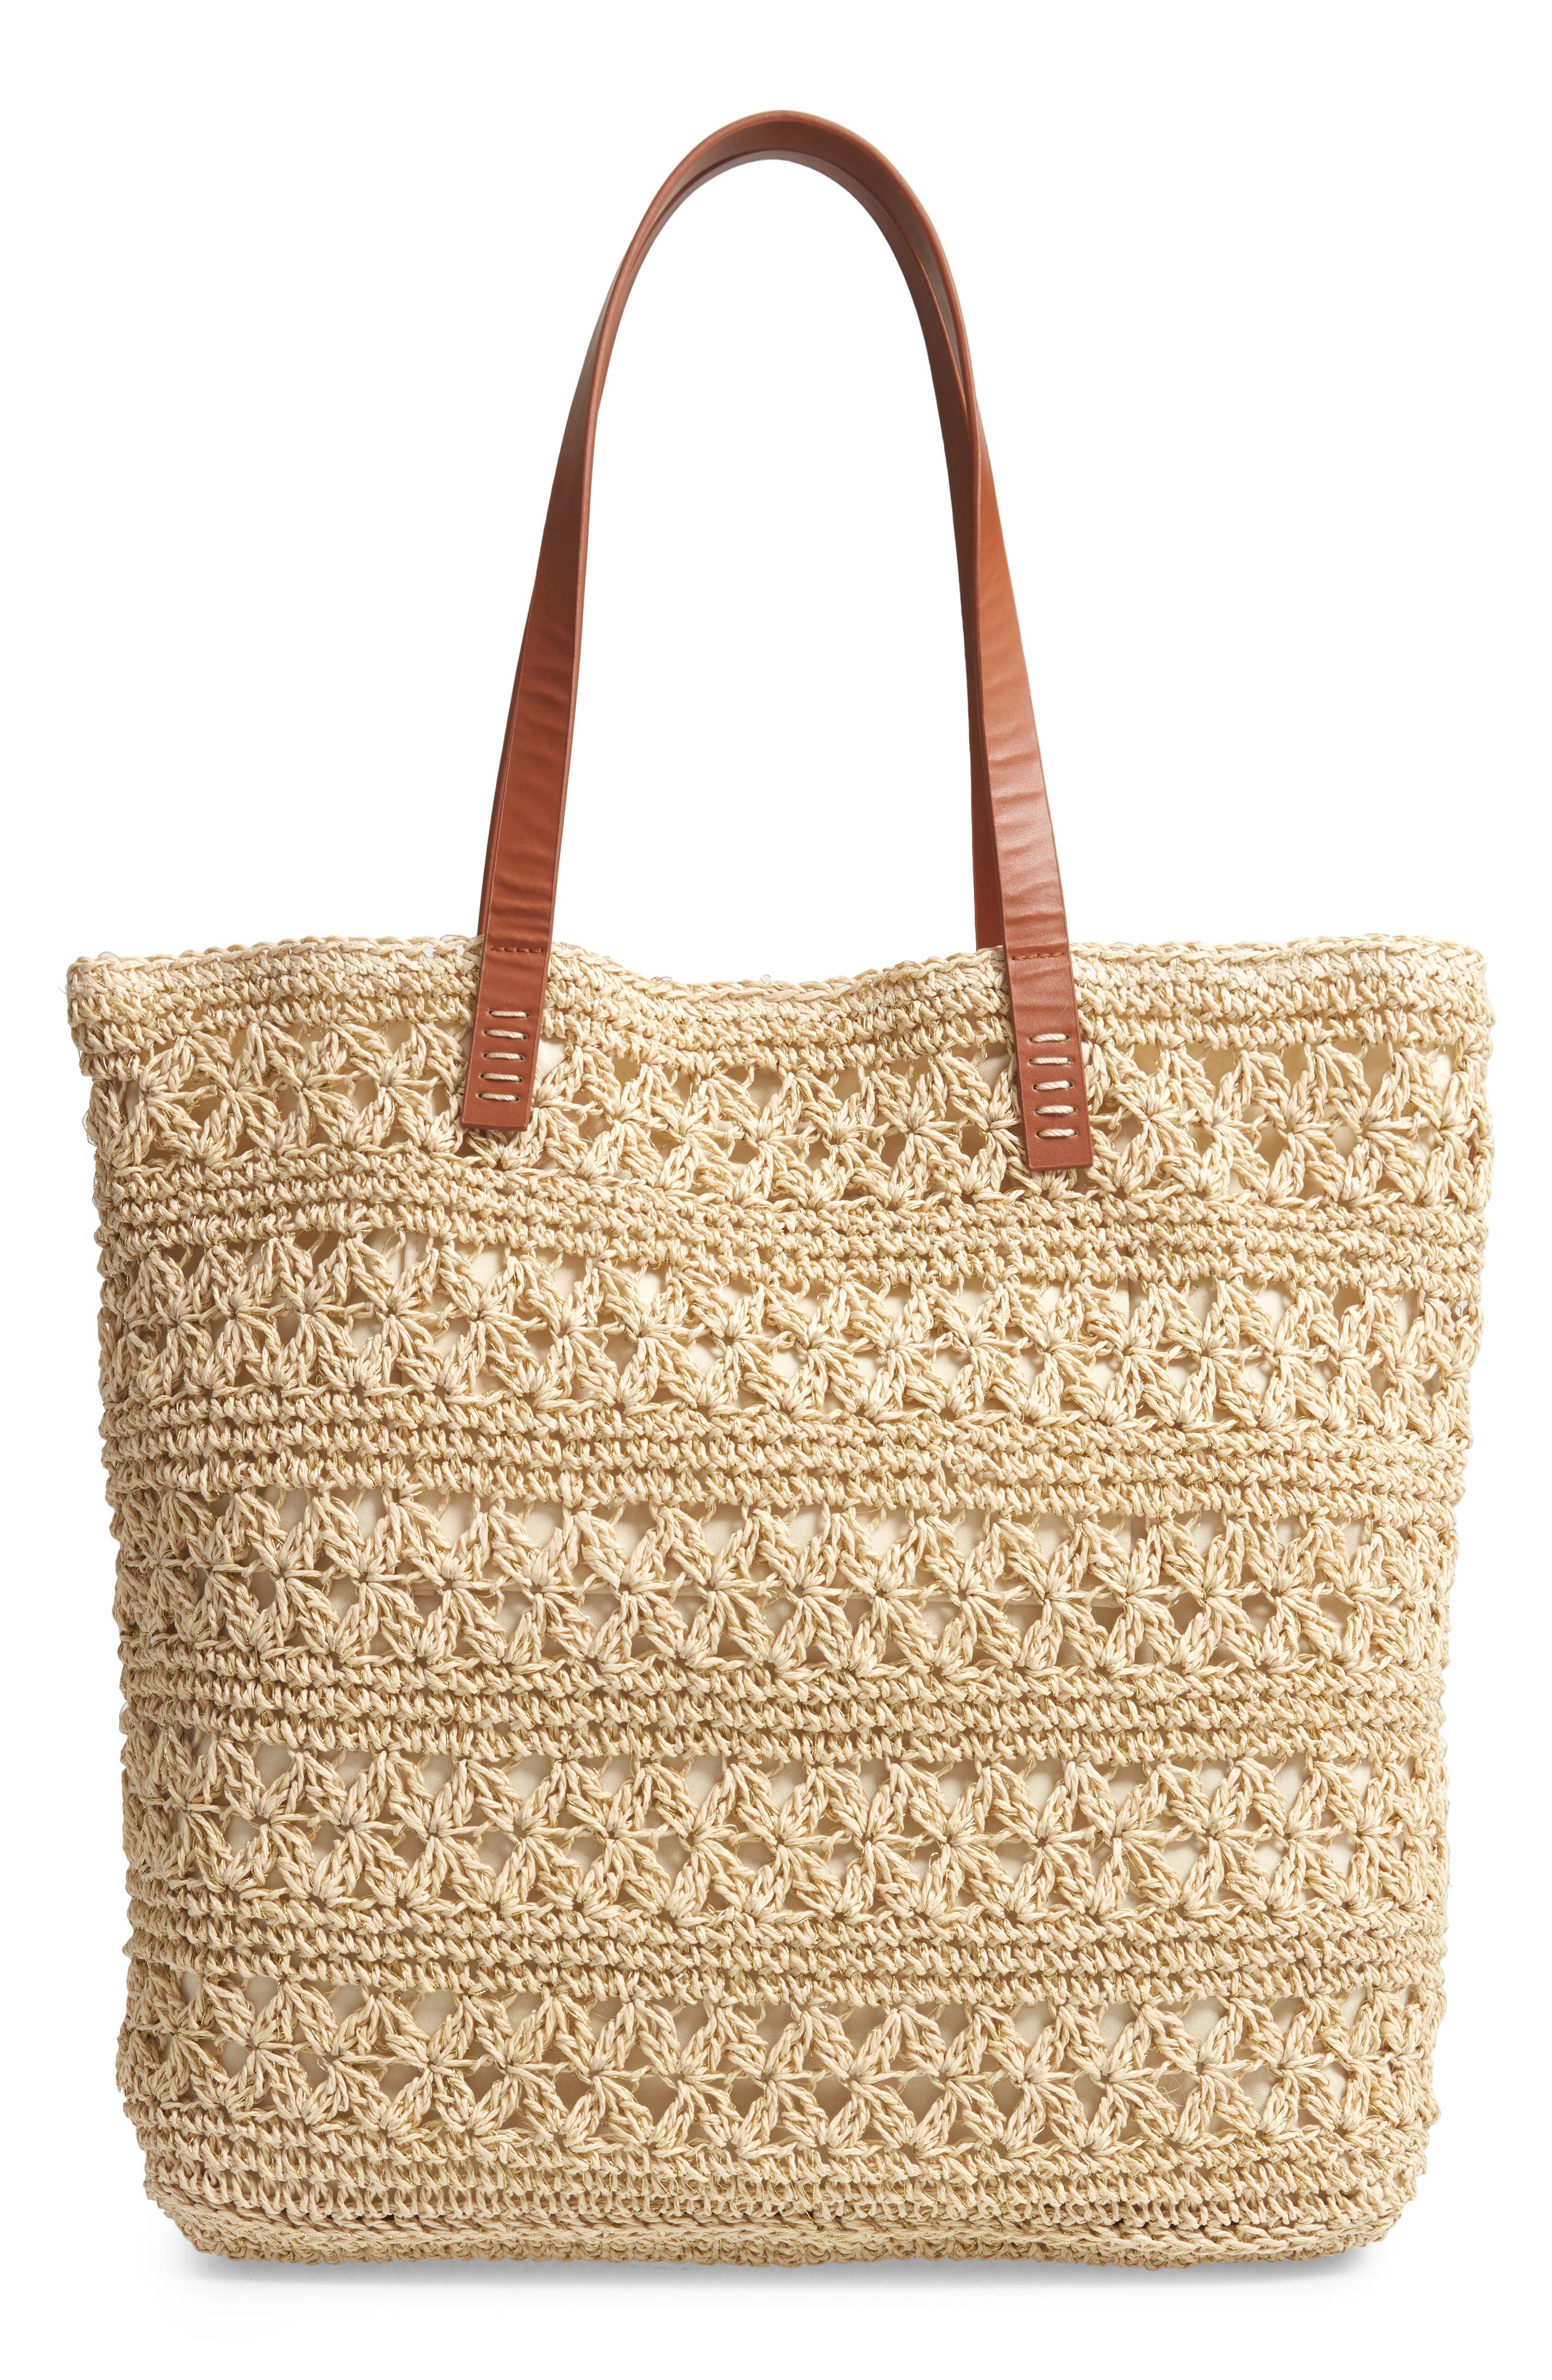 NORDSTROM,                             Packable Woven Raffia Tote,                             Main thumbnail 1, color,                             NATURAL